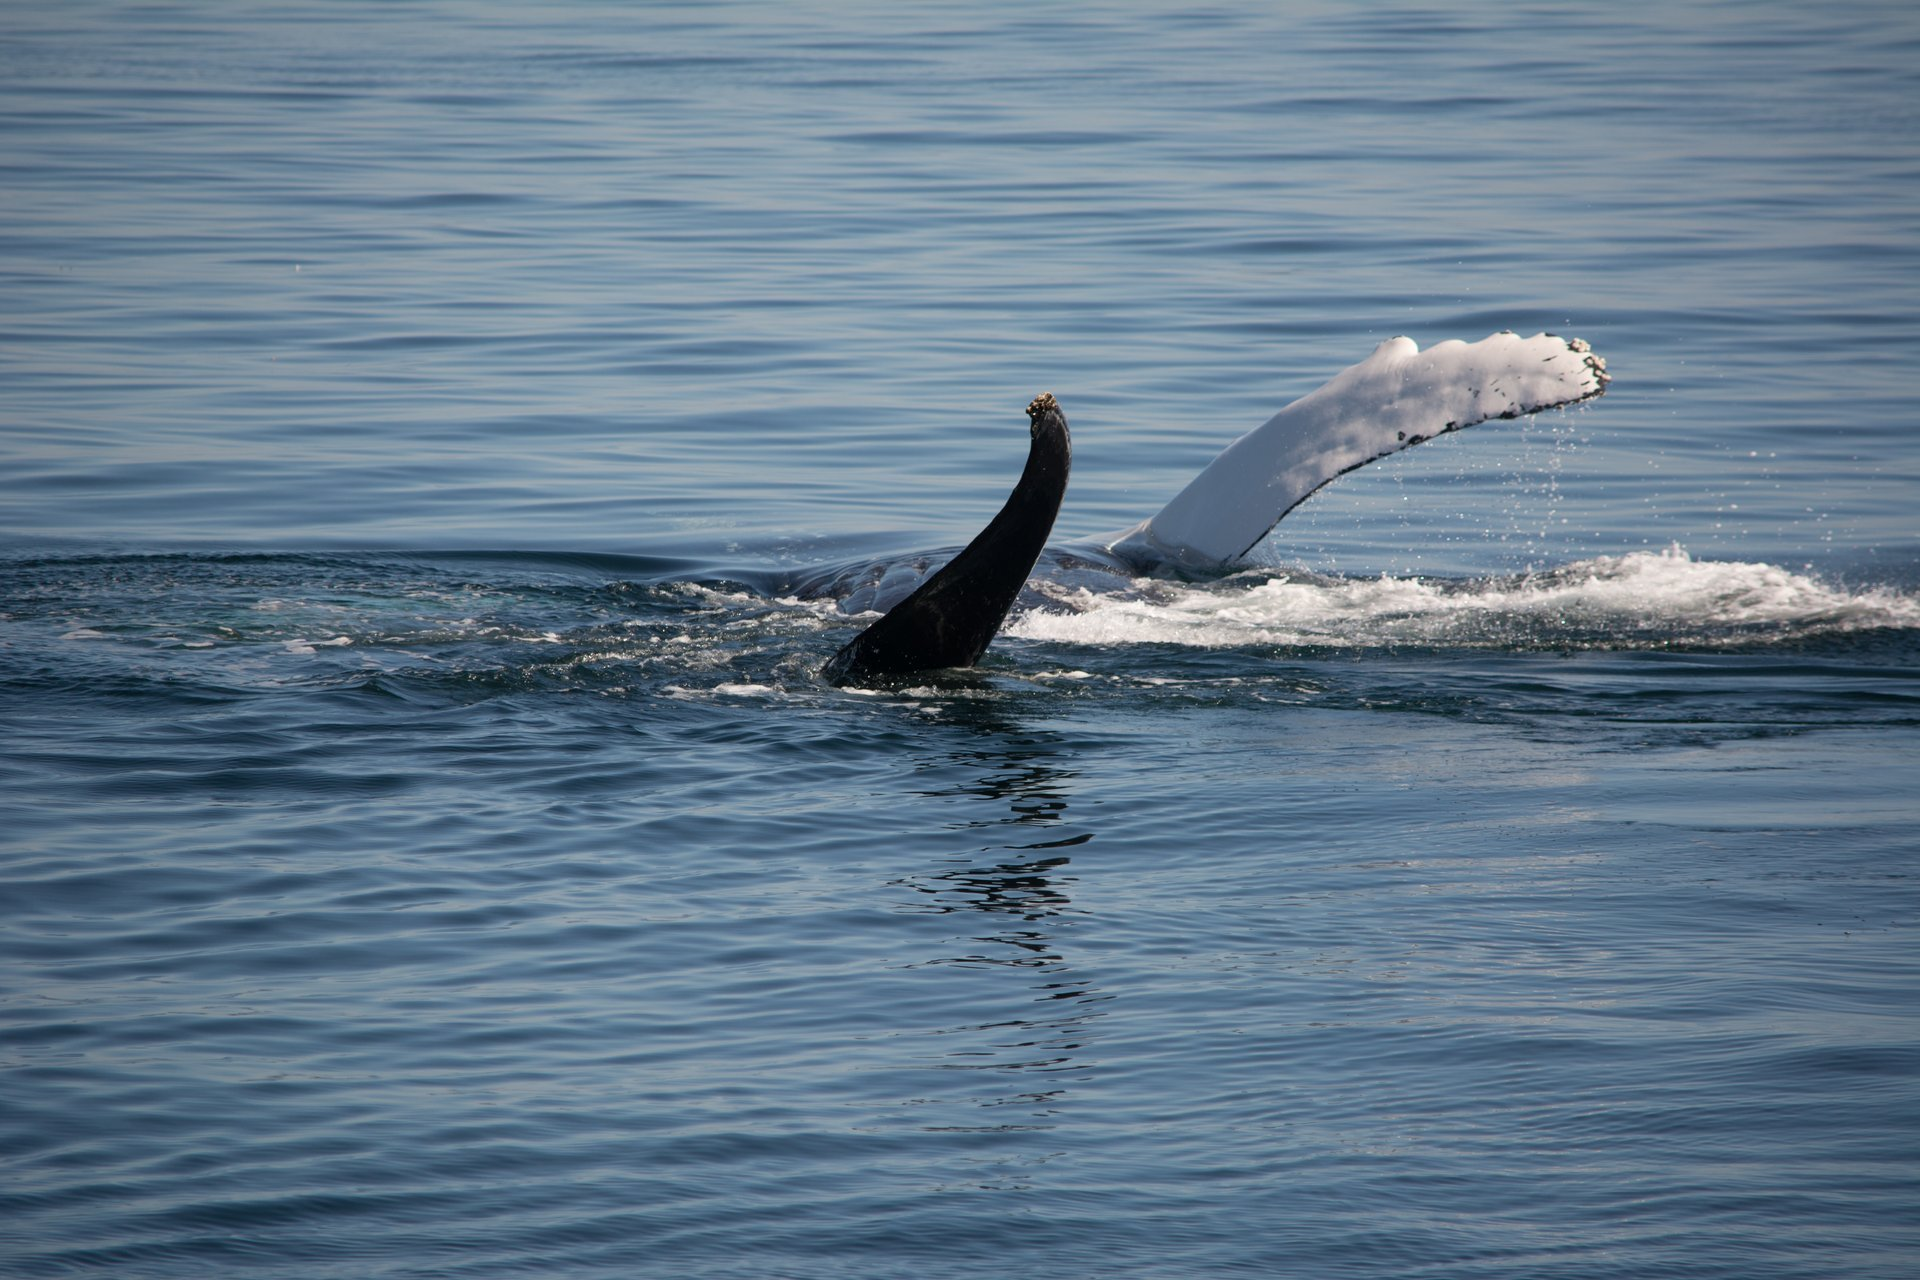 Whale watching in Plymouth Harbor 2019